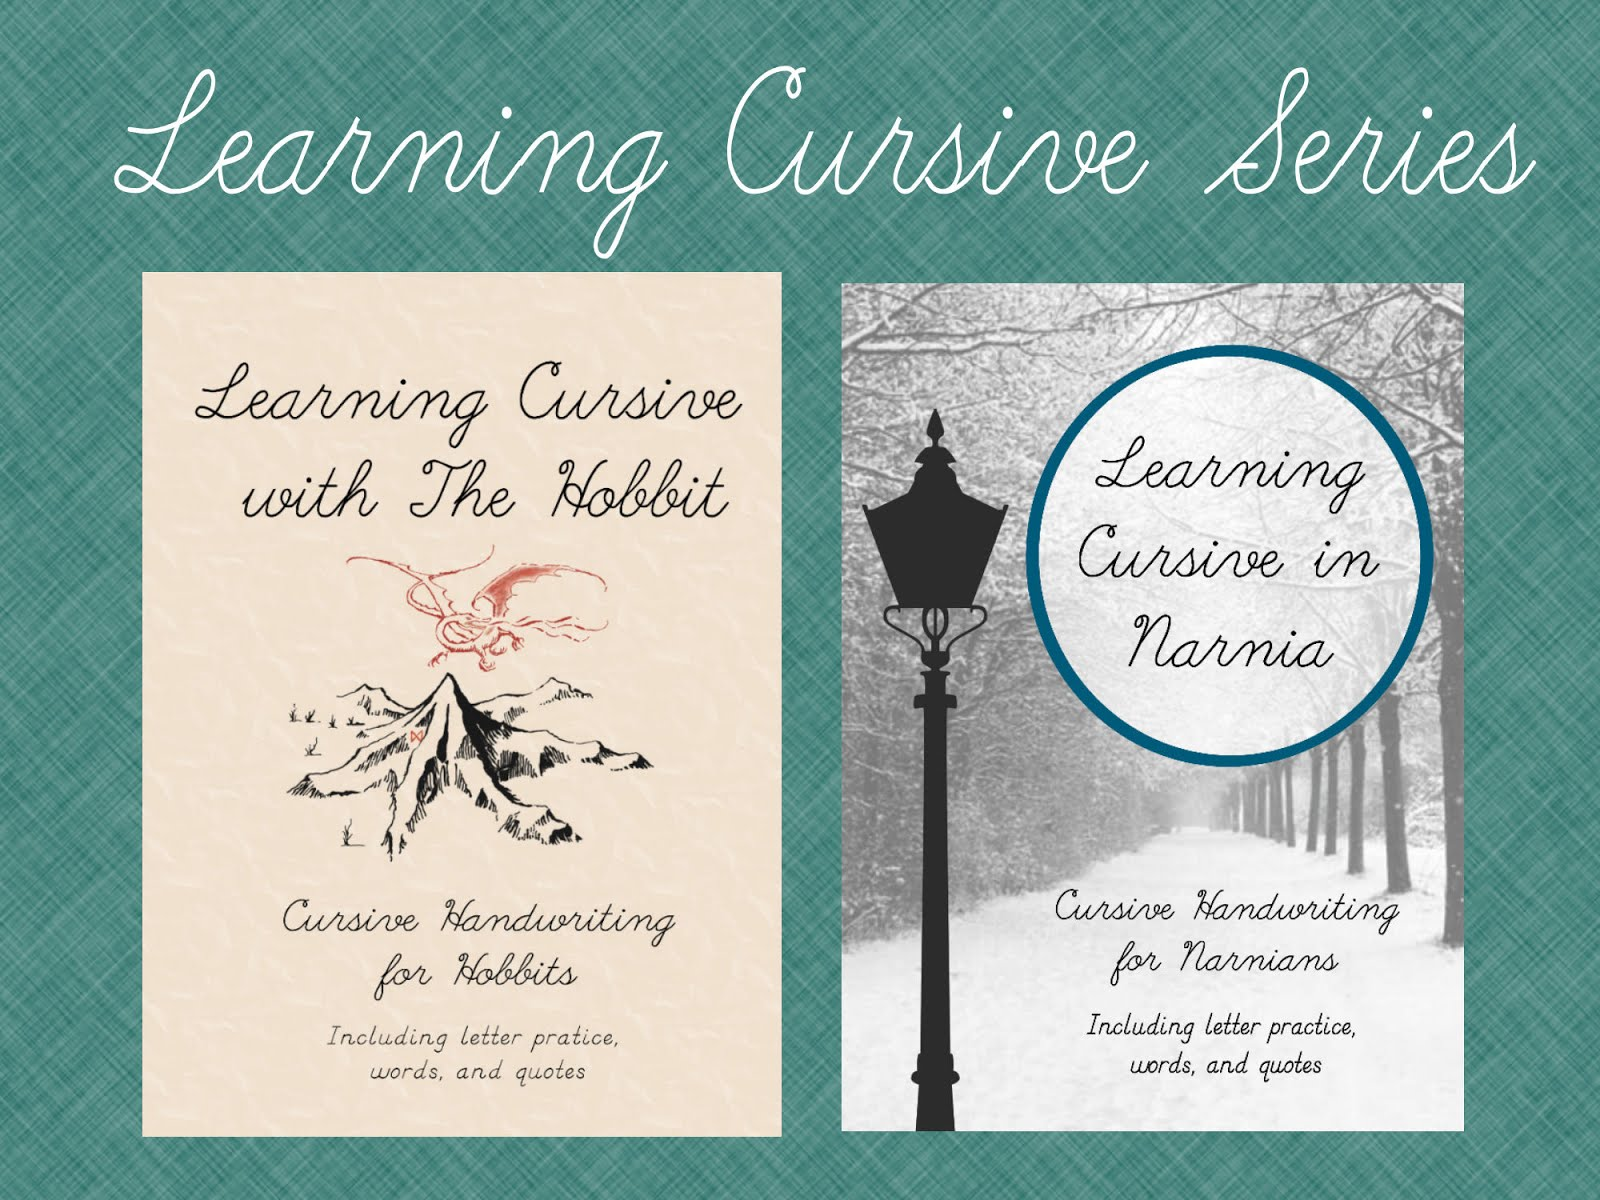 Learning Cursive